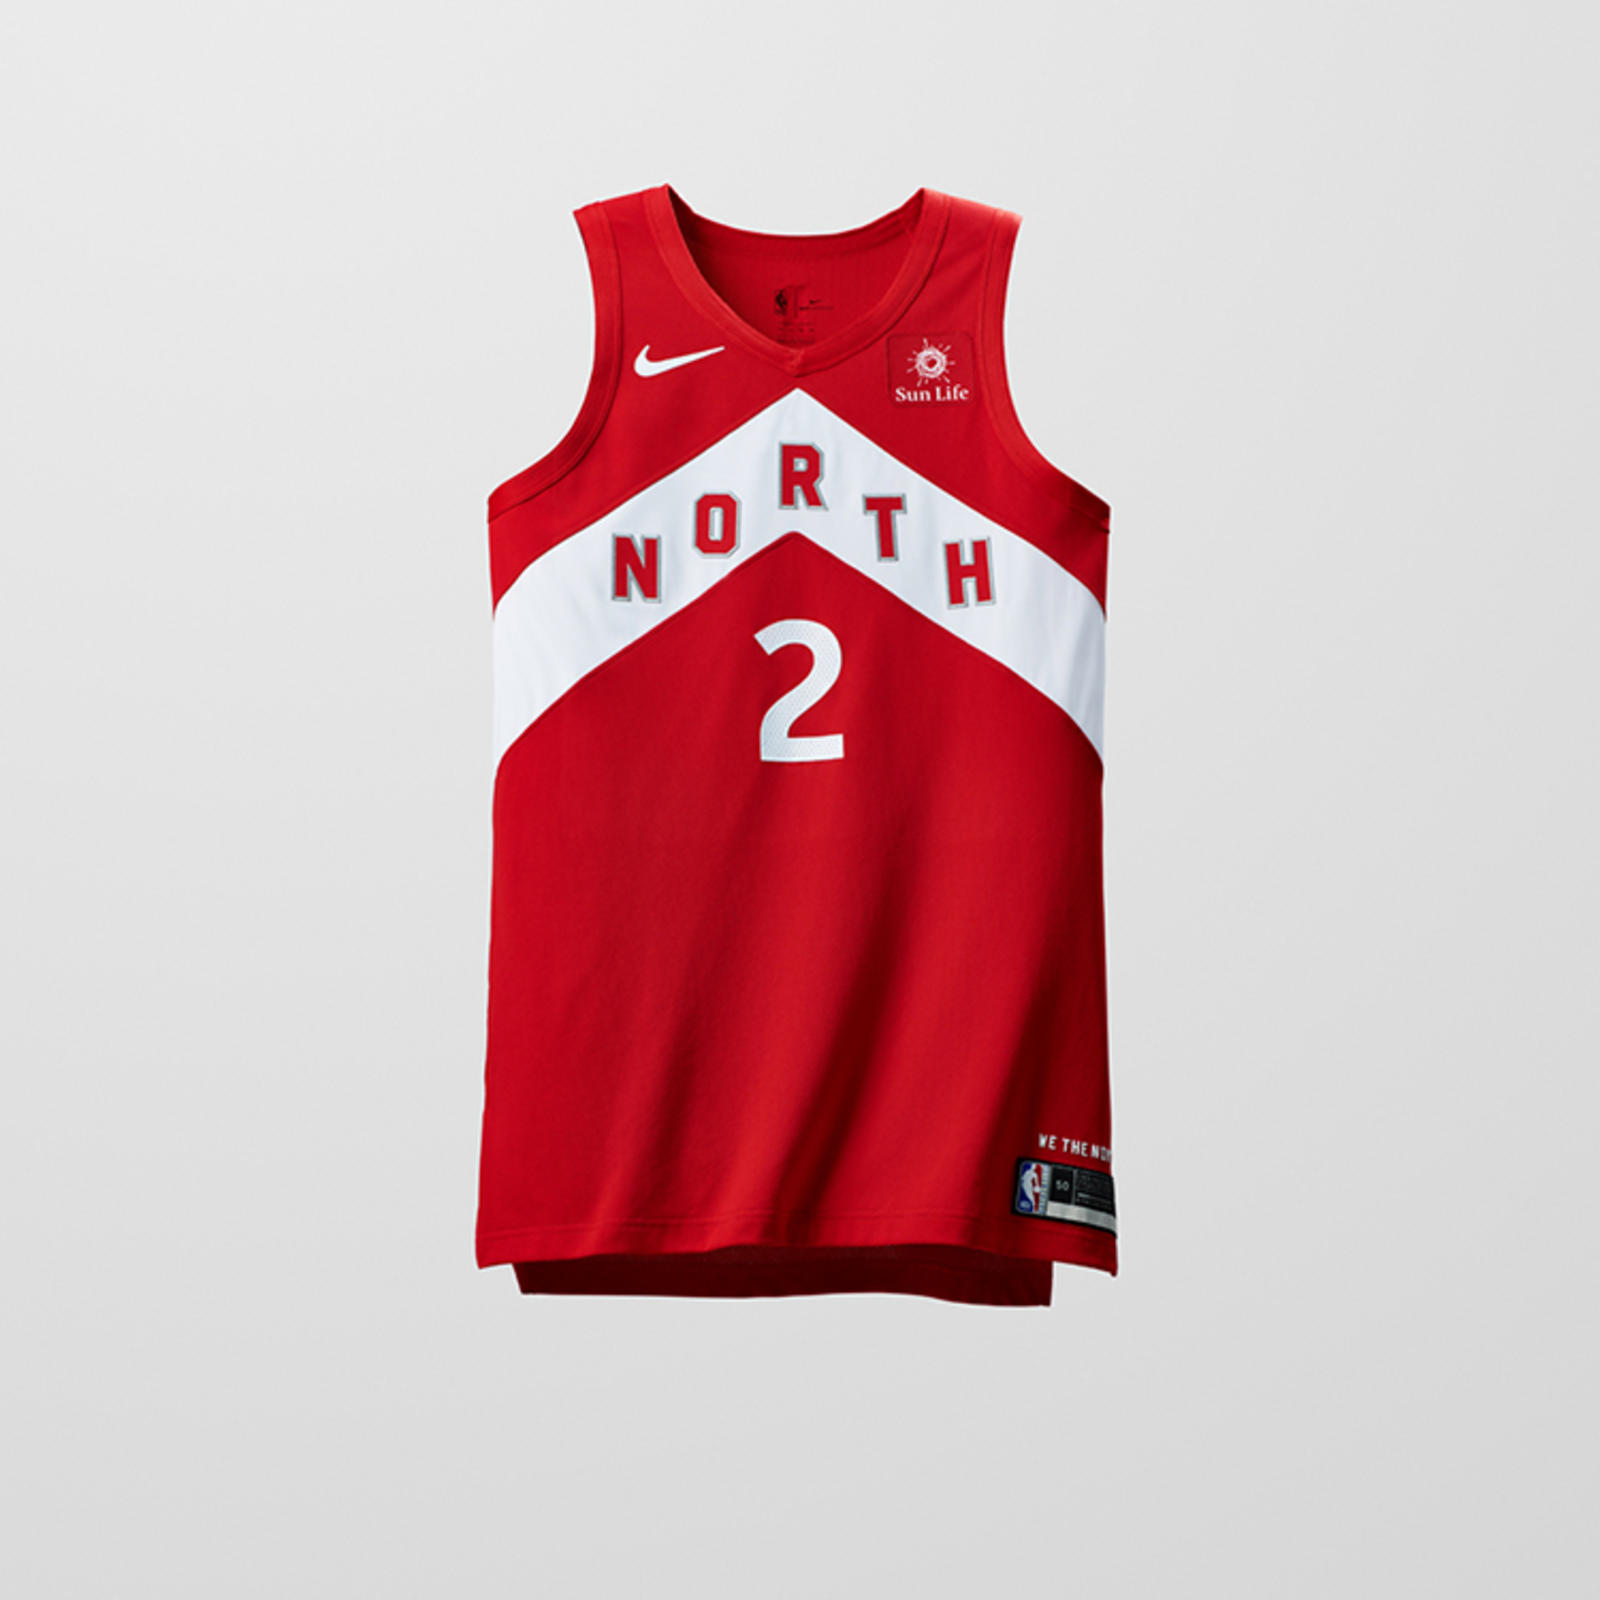 46cb0051e91d Introducing the Nike x NBA EARNED Edition Uniforms 4